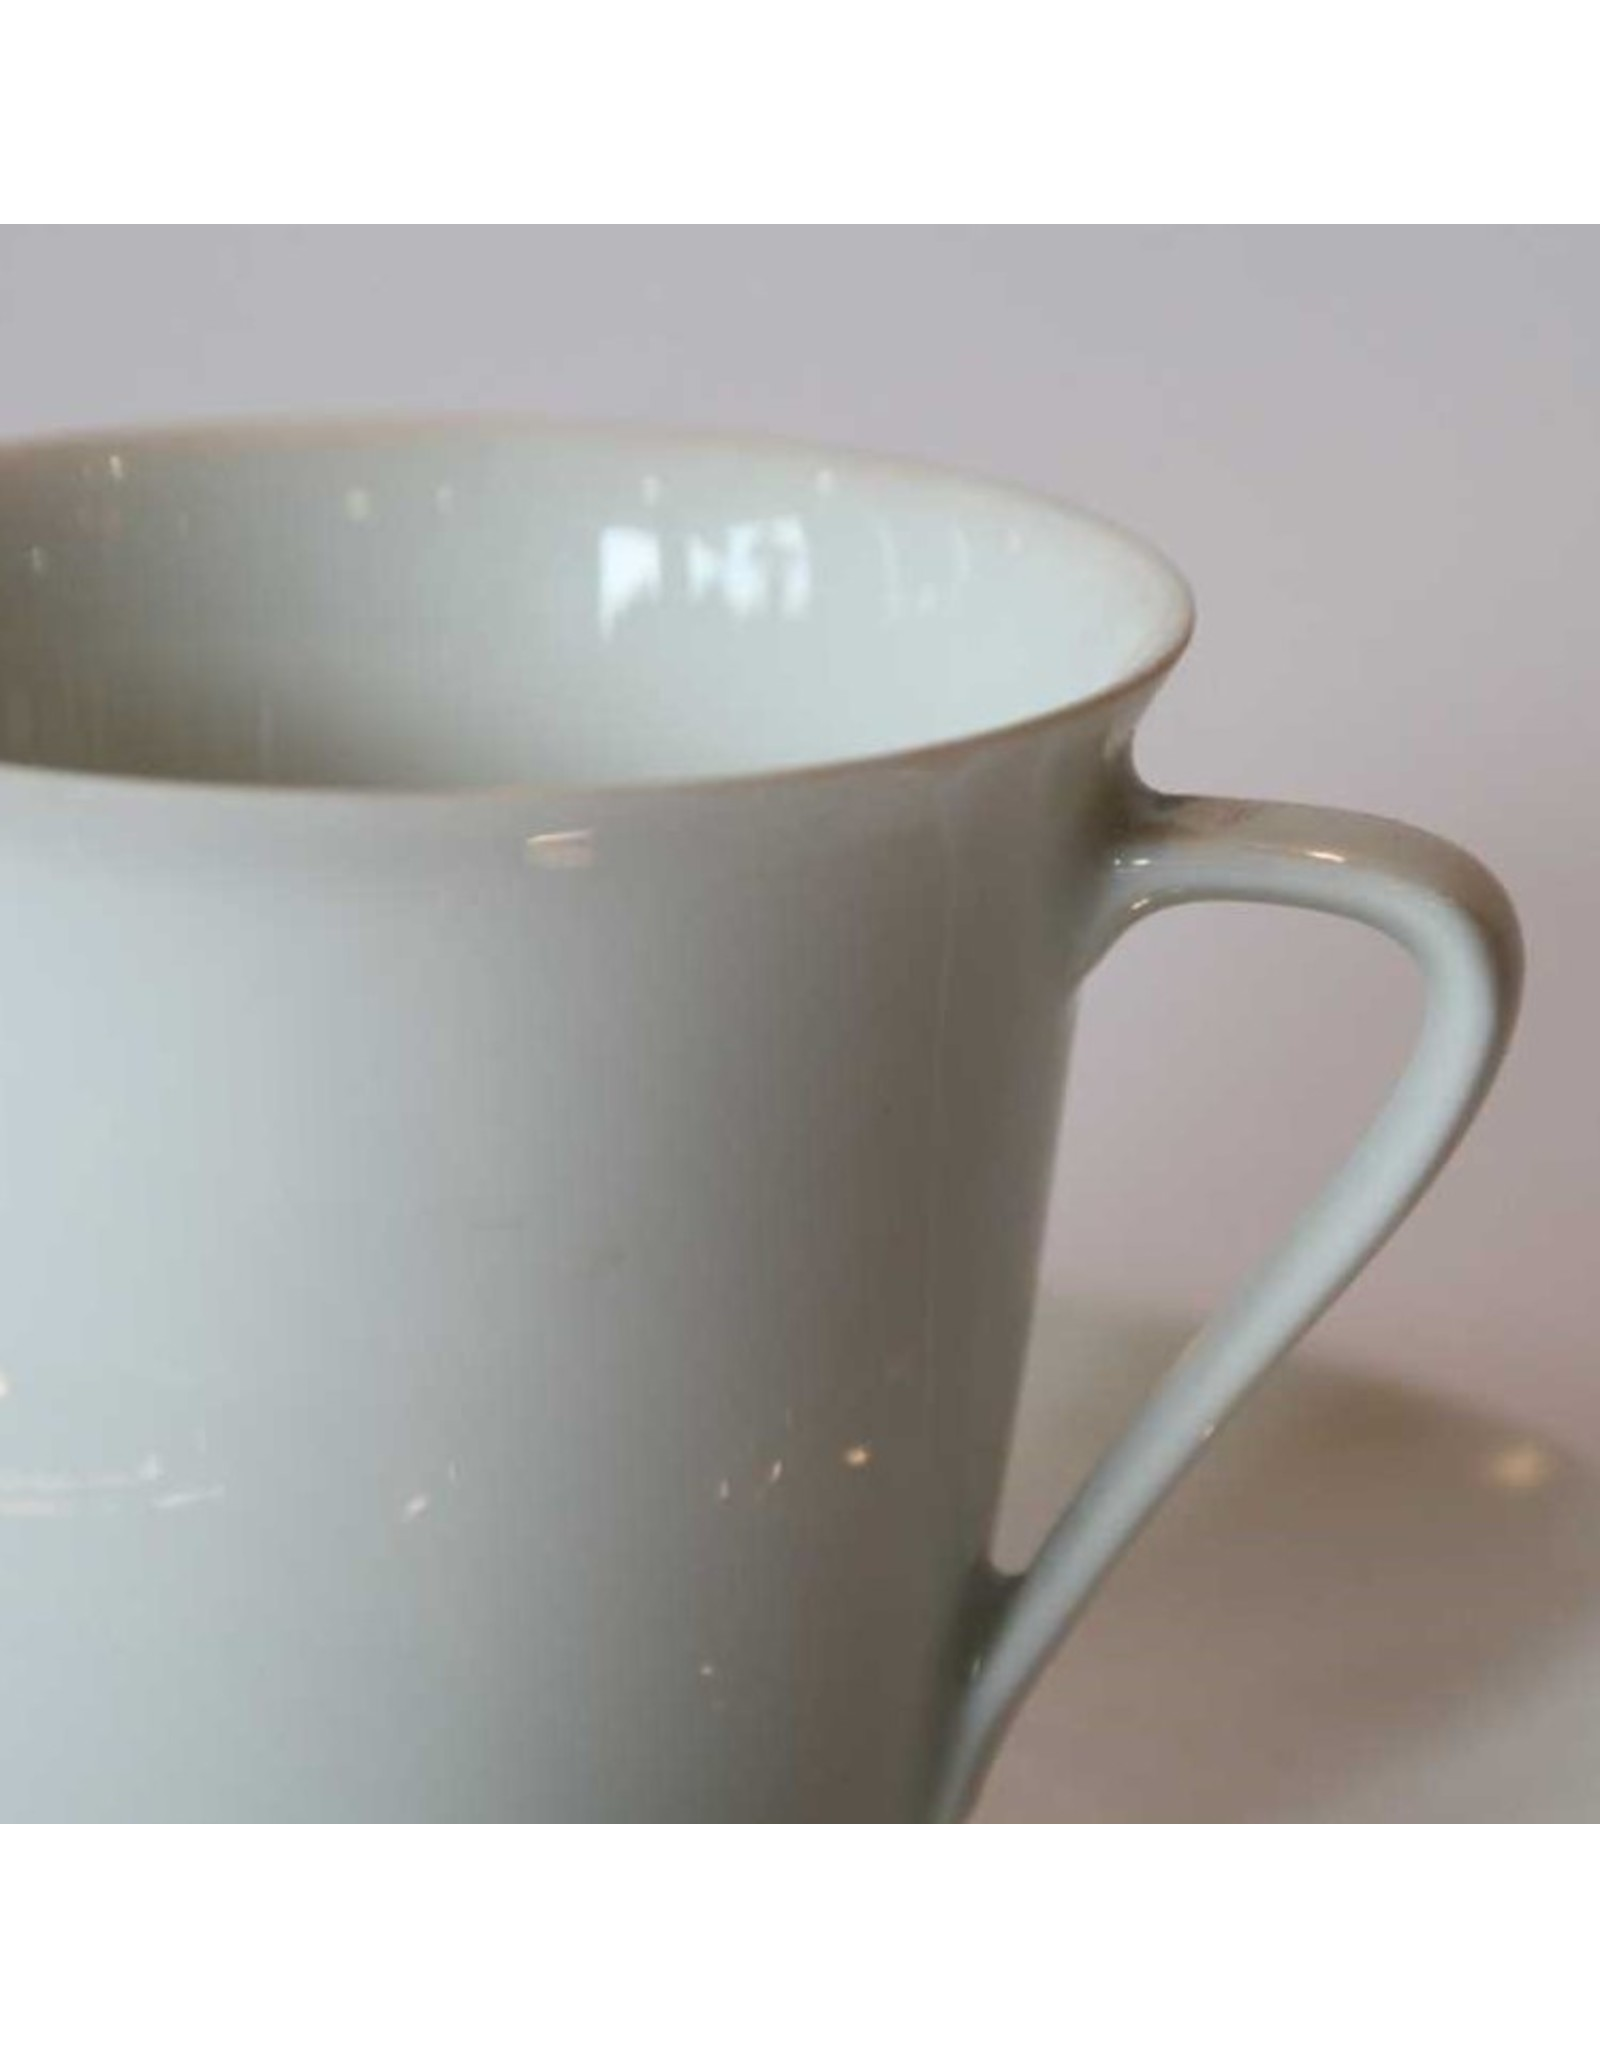 Cup and saucer - white porcelain, Rosenthal